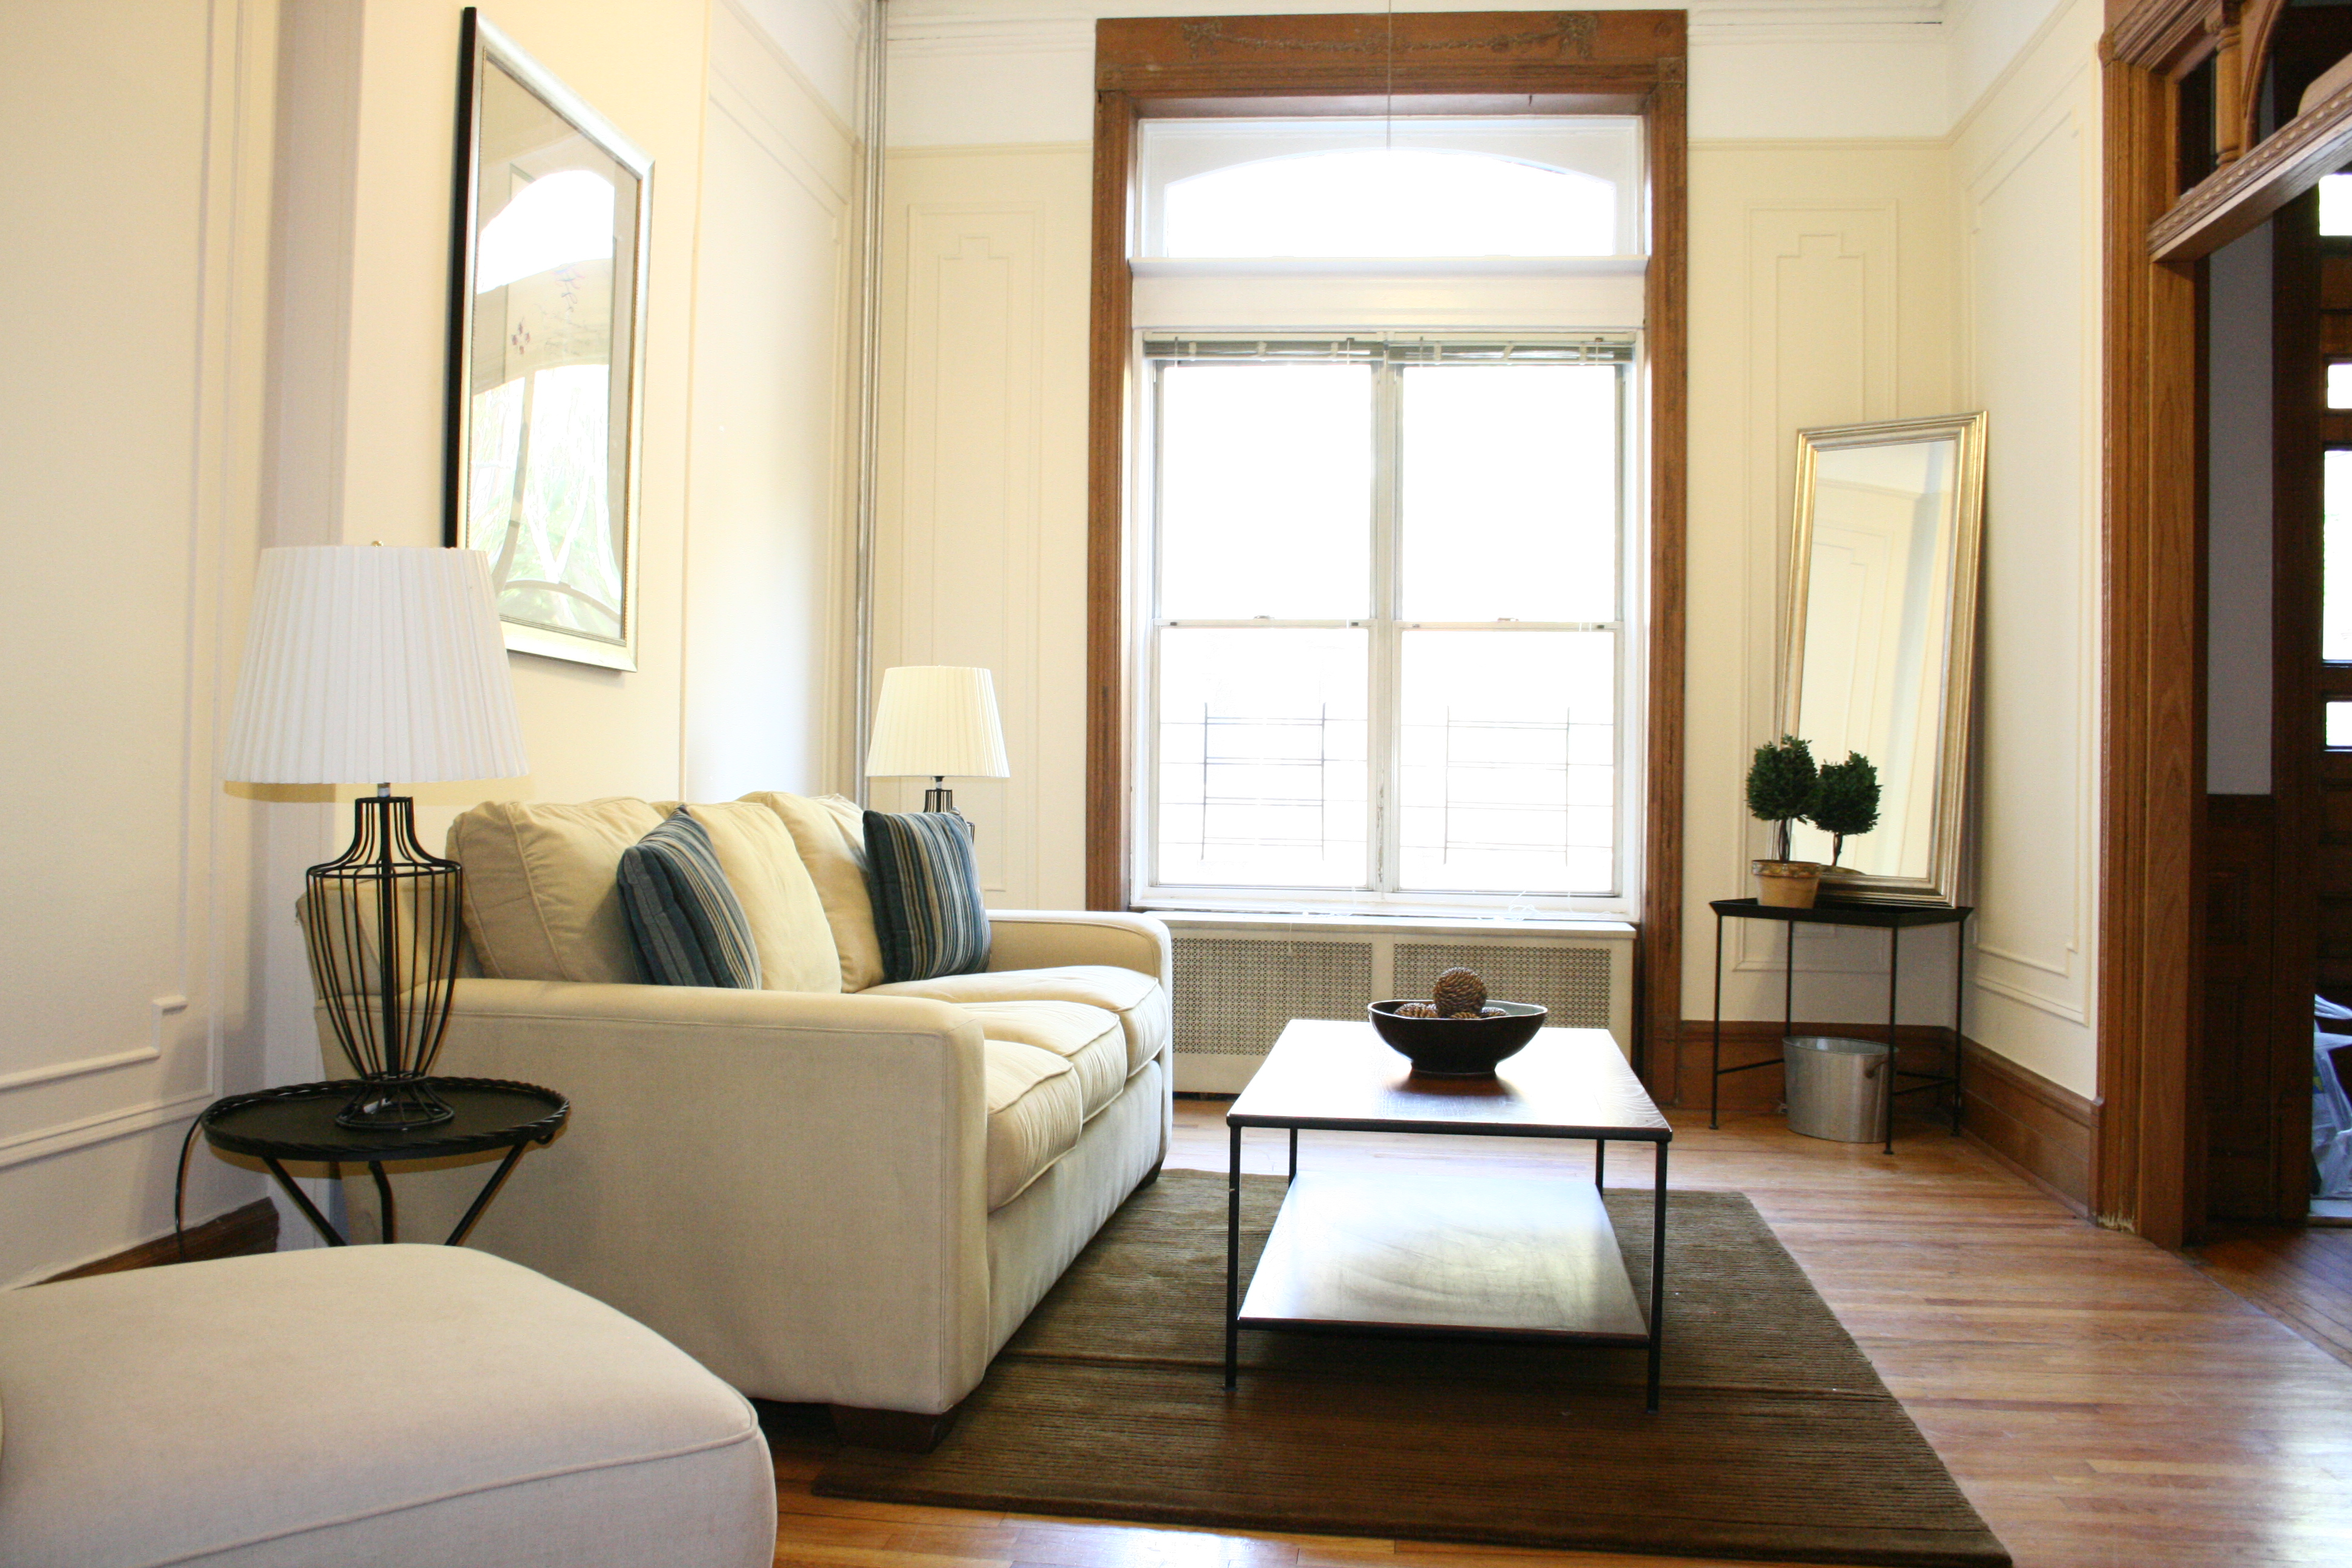 Interior Design And Home Staging Services Cathy Hobbs